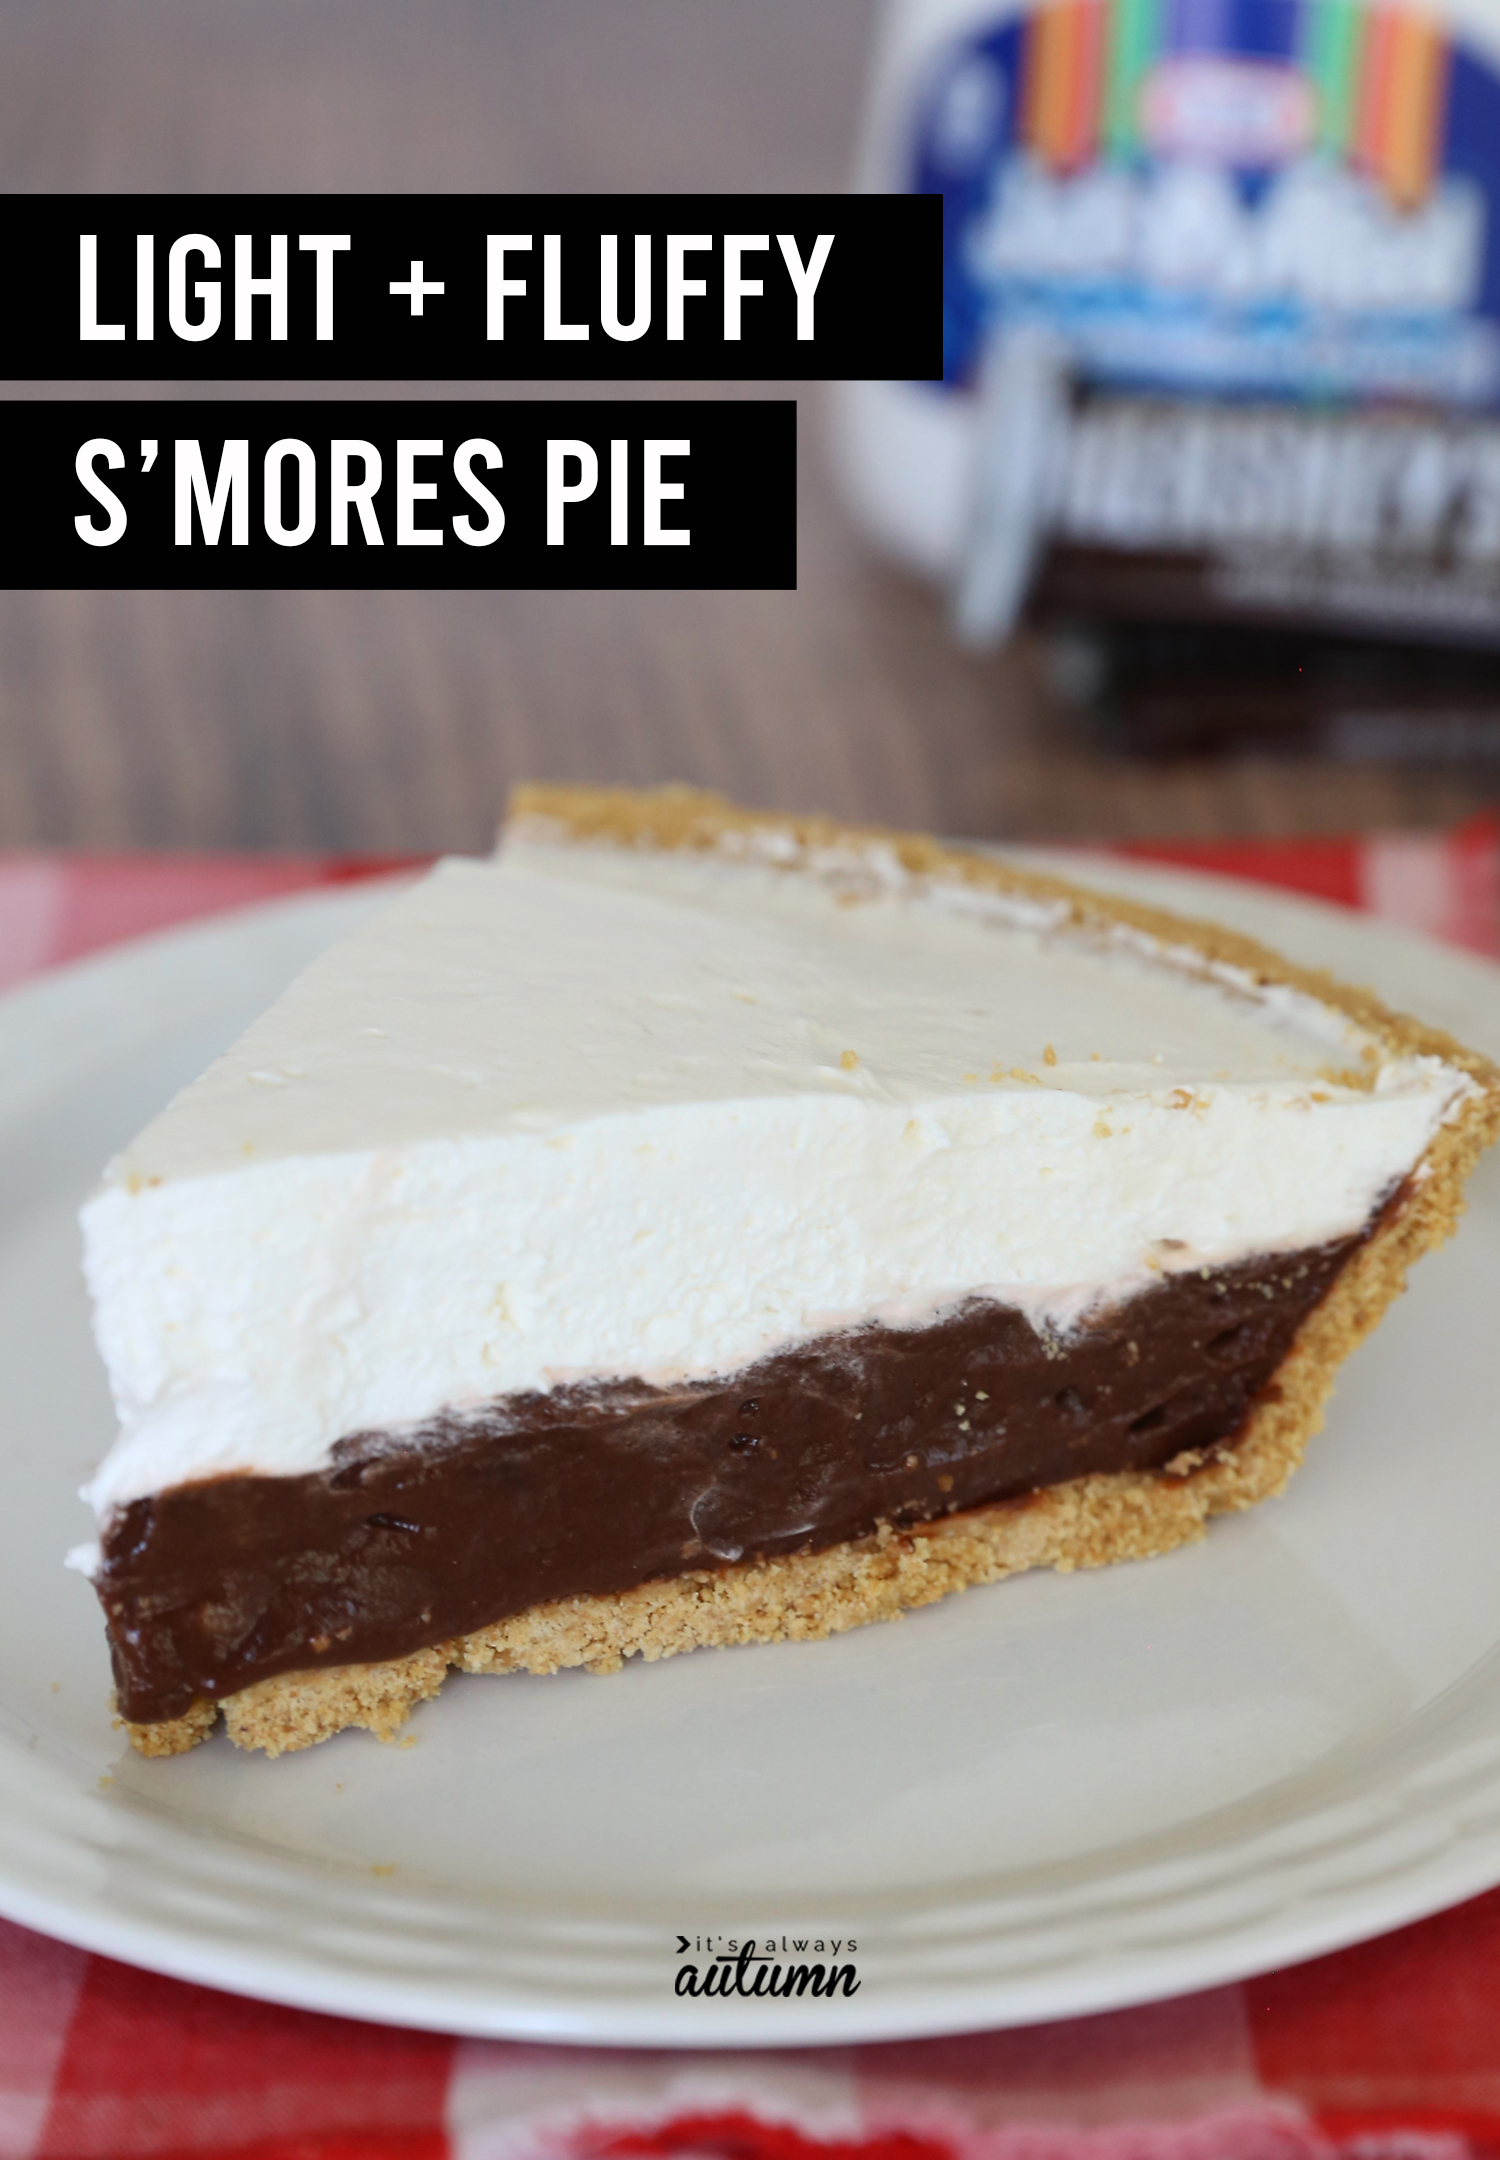 Smores pie on a plate with words: light + fluffy s'mores pie